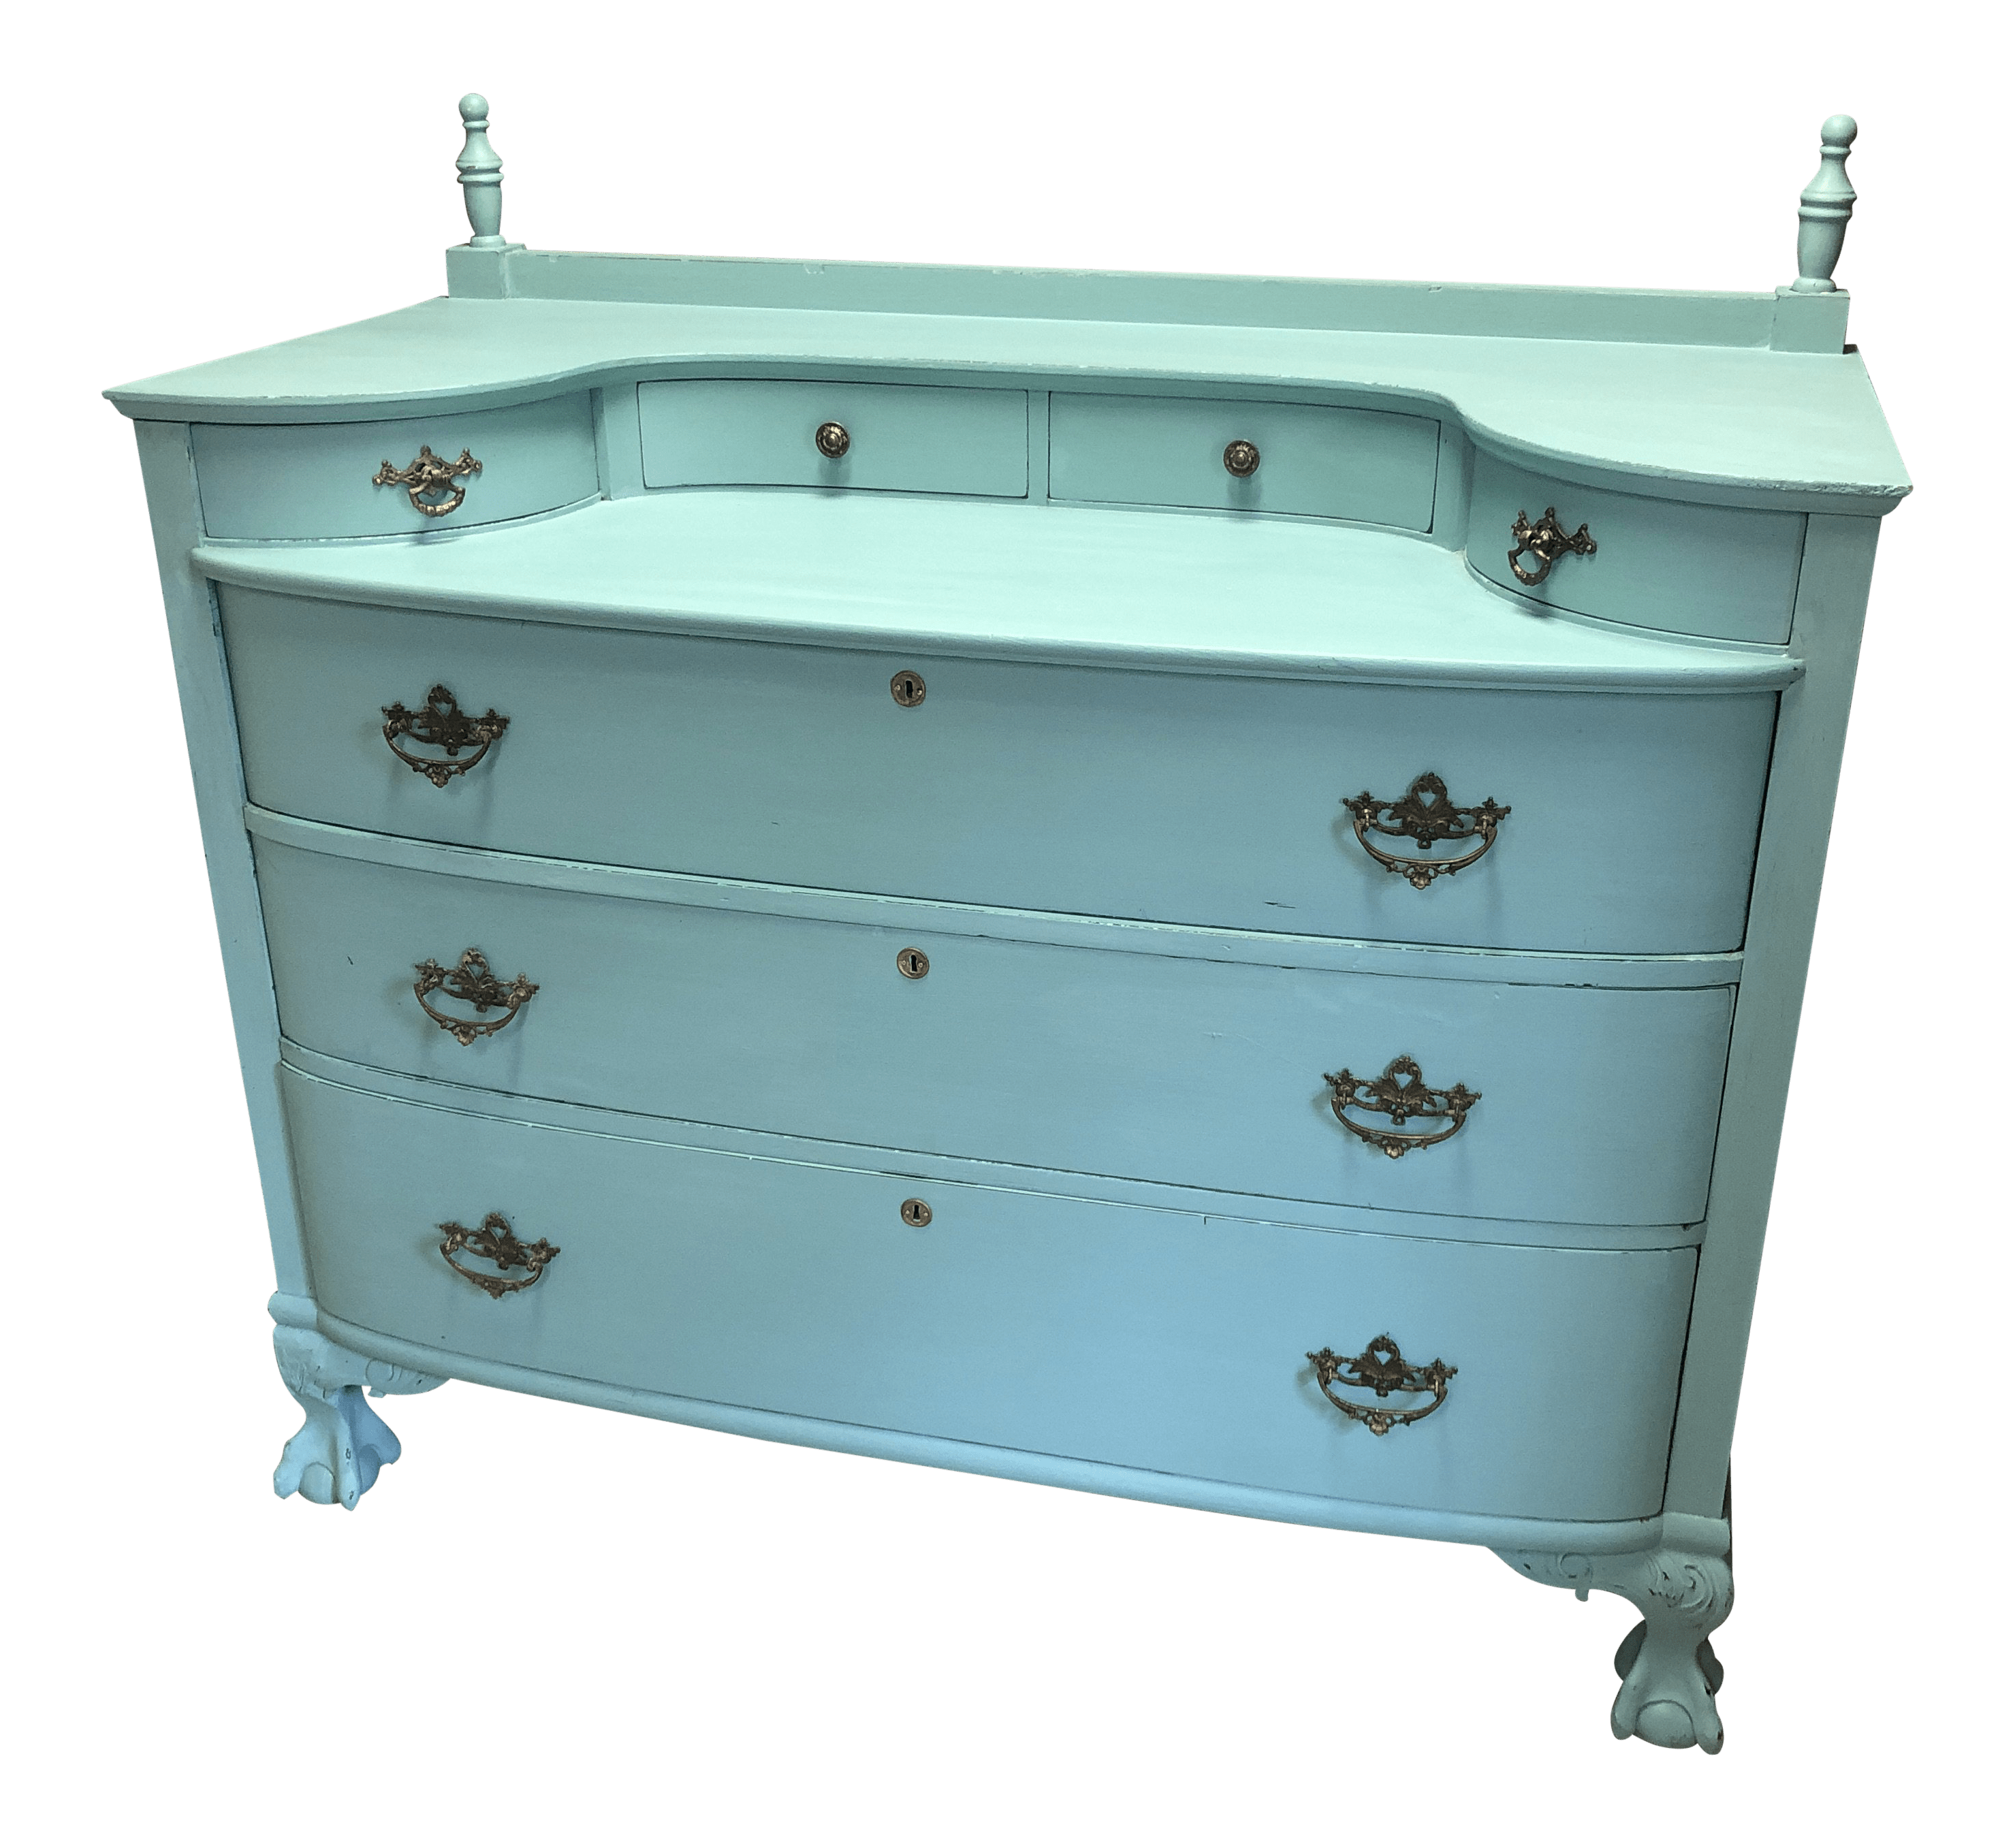 Sideboard Shabby Chic 1900s Shabby Chic Bow Front Dresser Sideboard Buffet